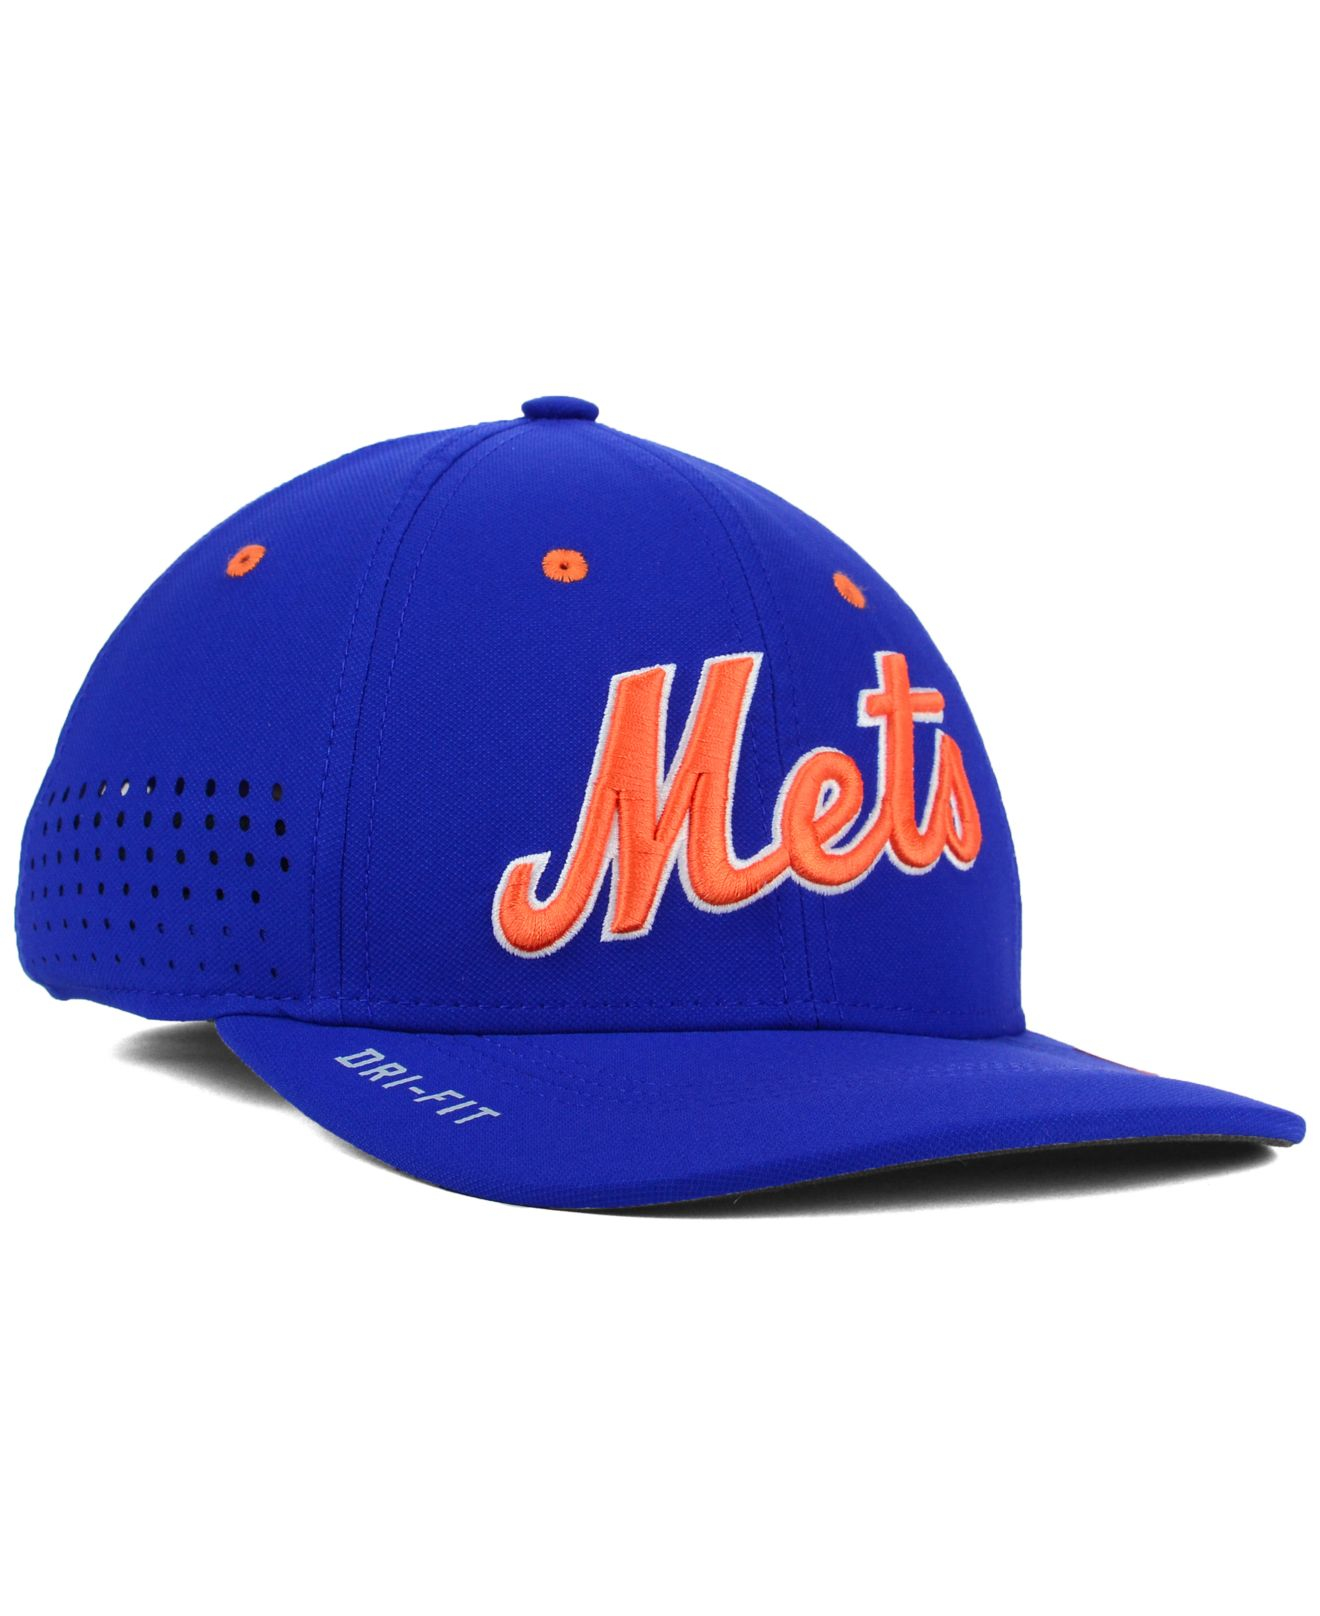 Lyst - Nike New York Mets Vapor Swoosh Flex Cap in Blue for Men 7c0a32b166a7